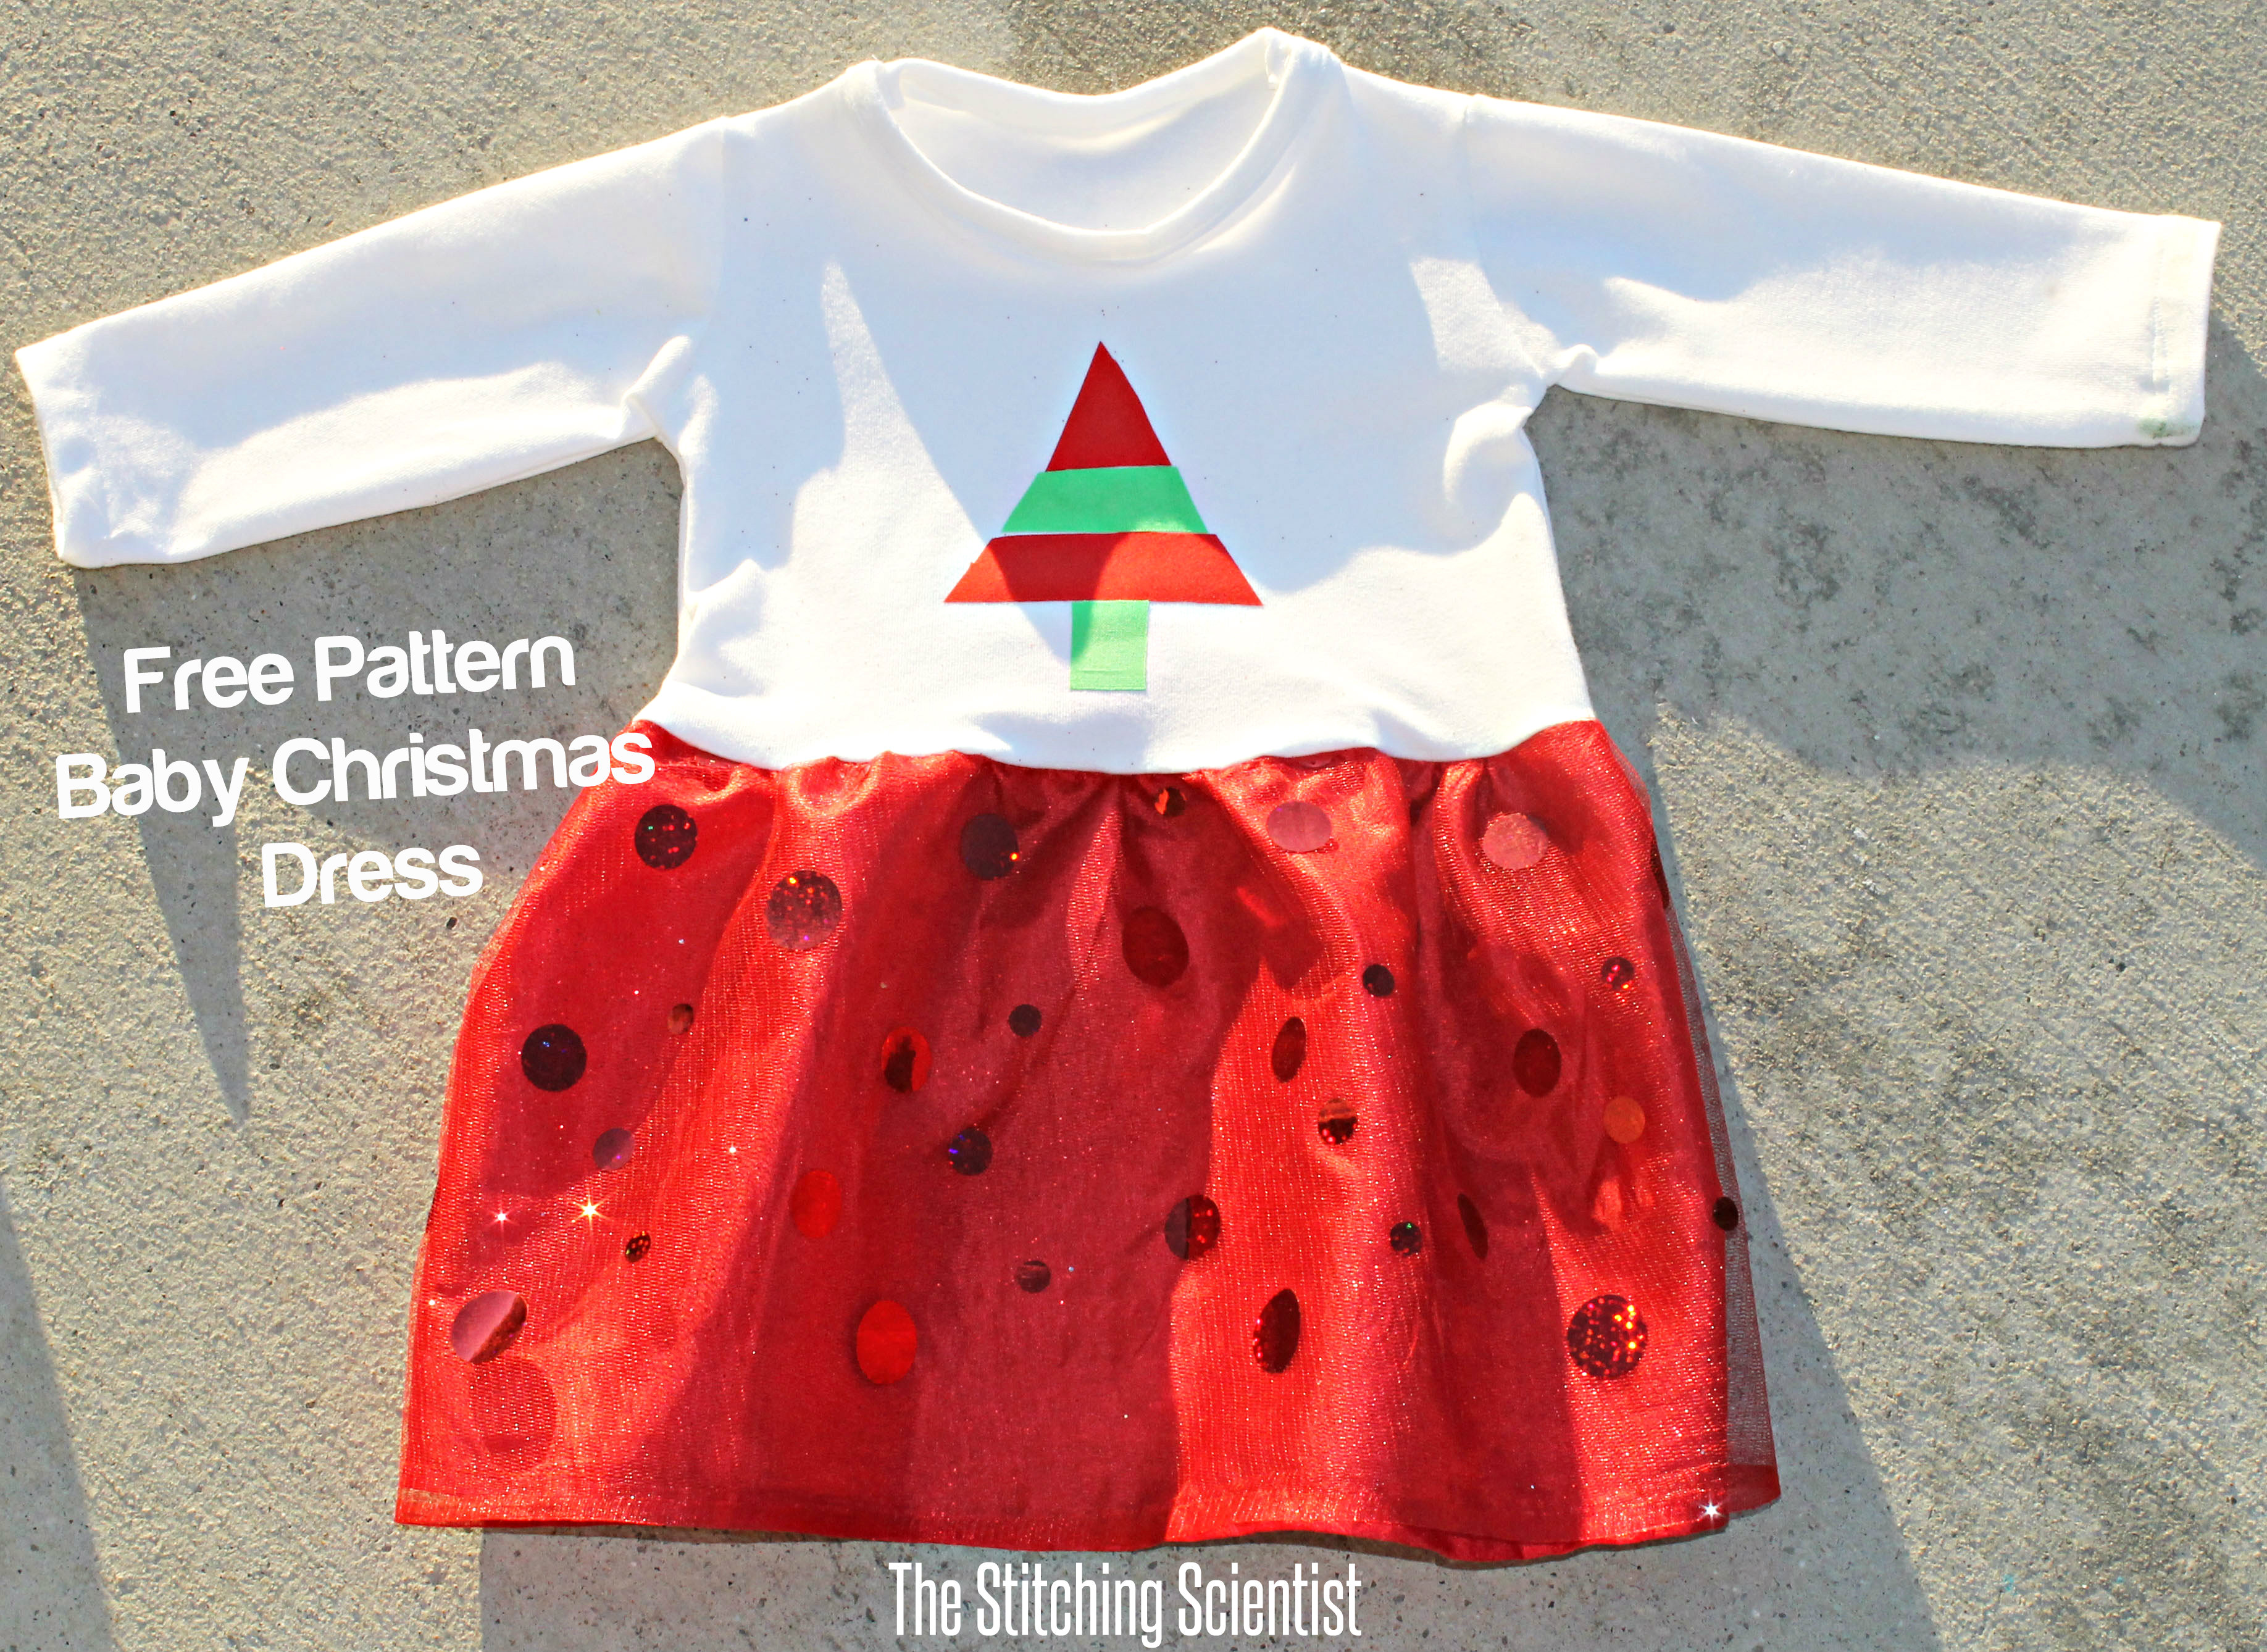 c062d6d22d63 I hope you enjoy this Free Baby Christmas Dress Pattern. Please join us in  the Holiday Sewing Blog Tour hosted by Scattered Thoughts of Crafty Mom for  other ...